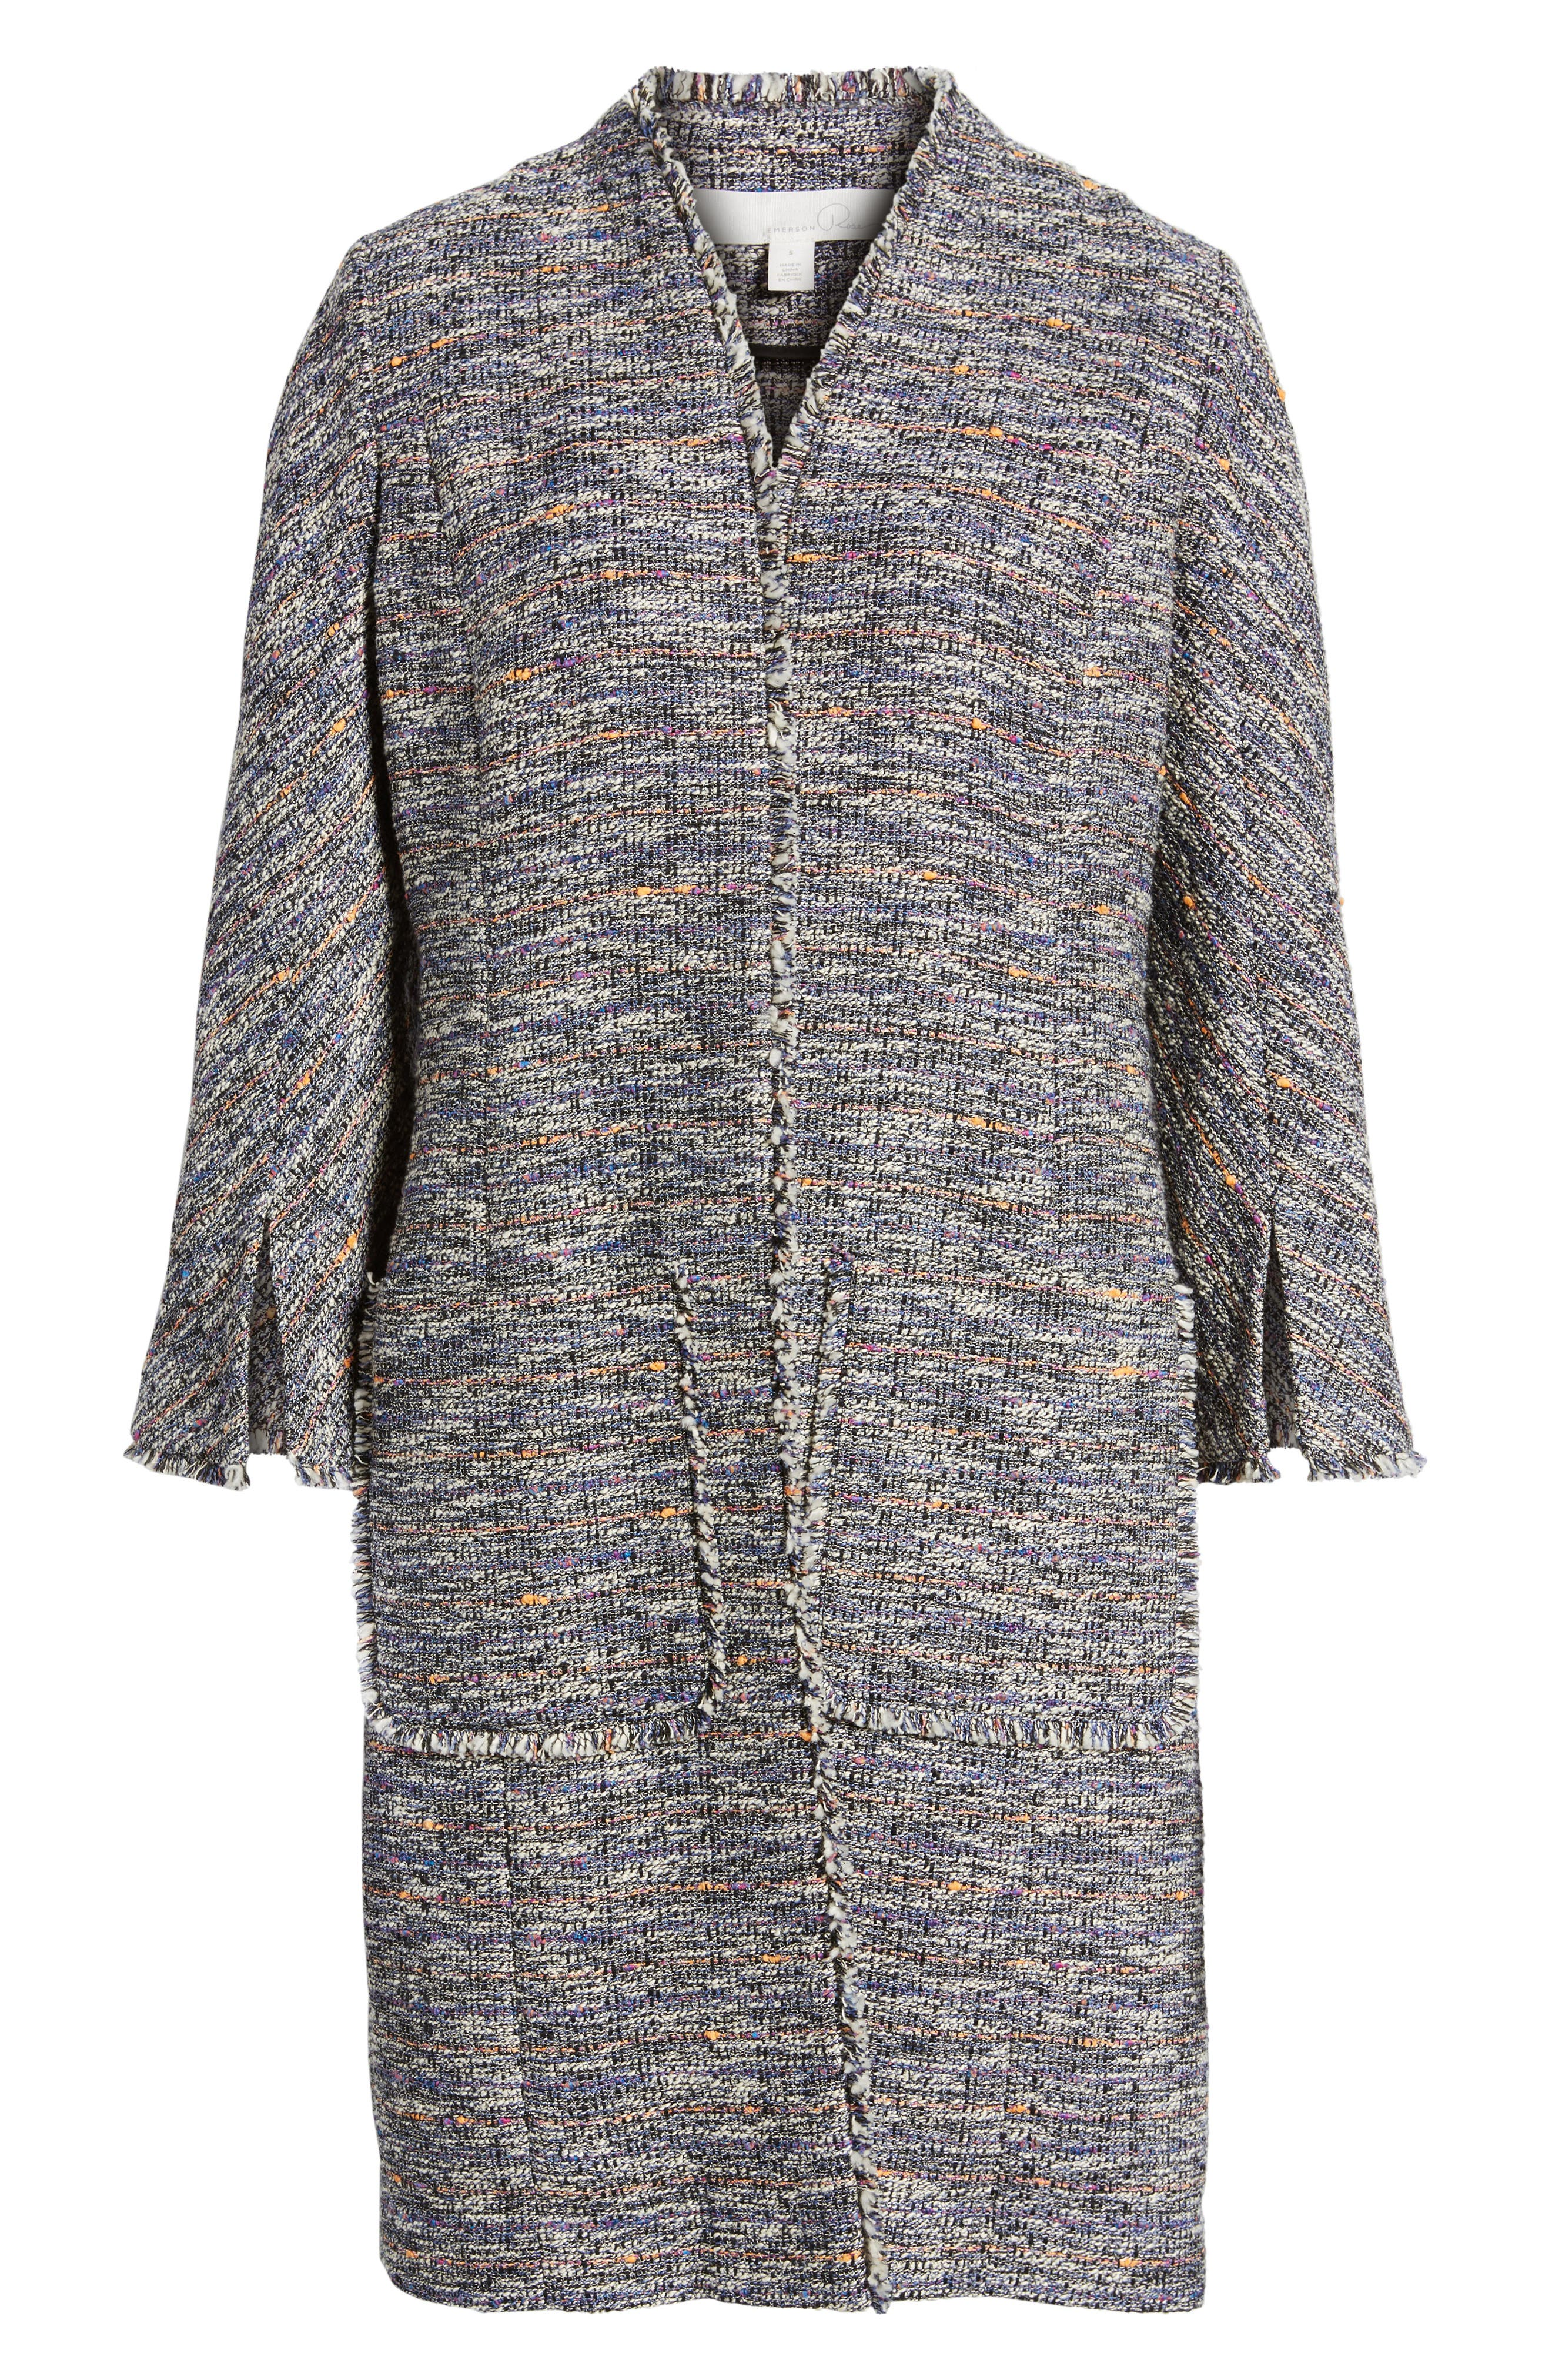 Novelty Tweed Split Sleeve Long Jacket,                             Alternate thumbnail 6, color,                             Black Multi Tweed